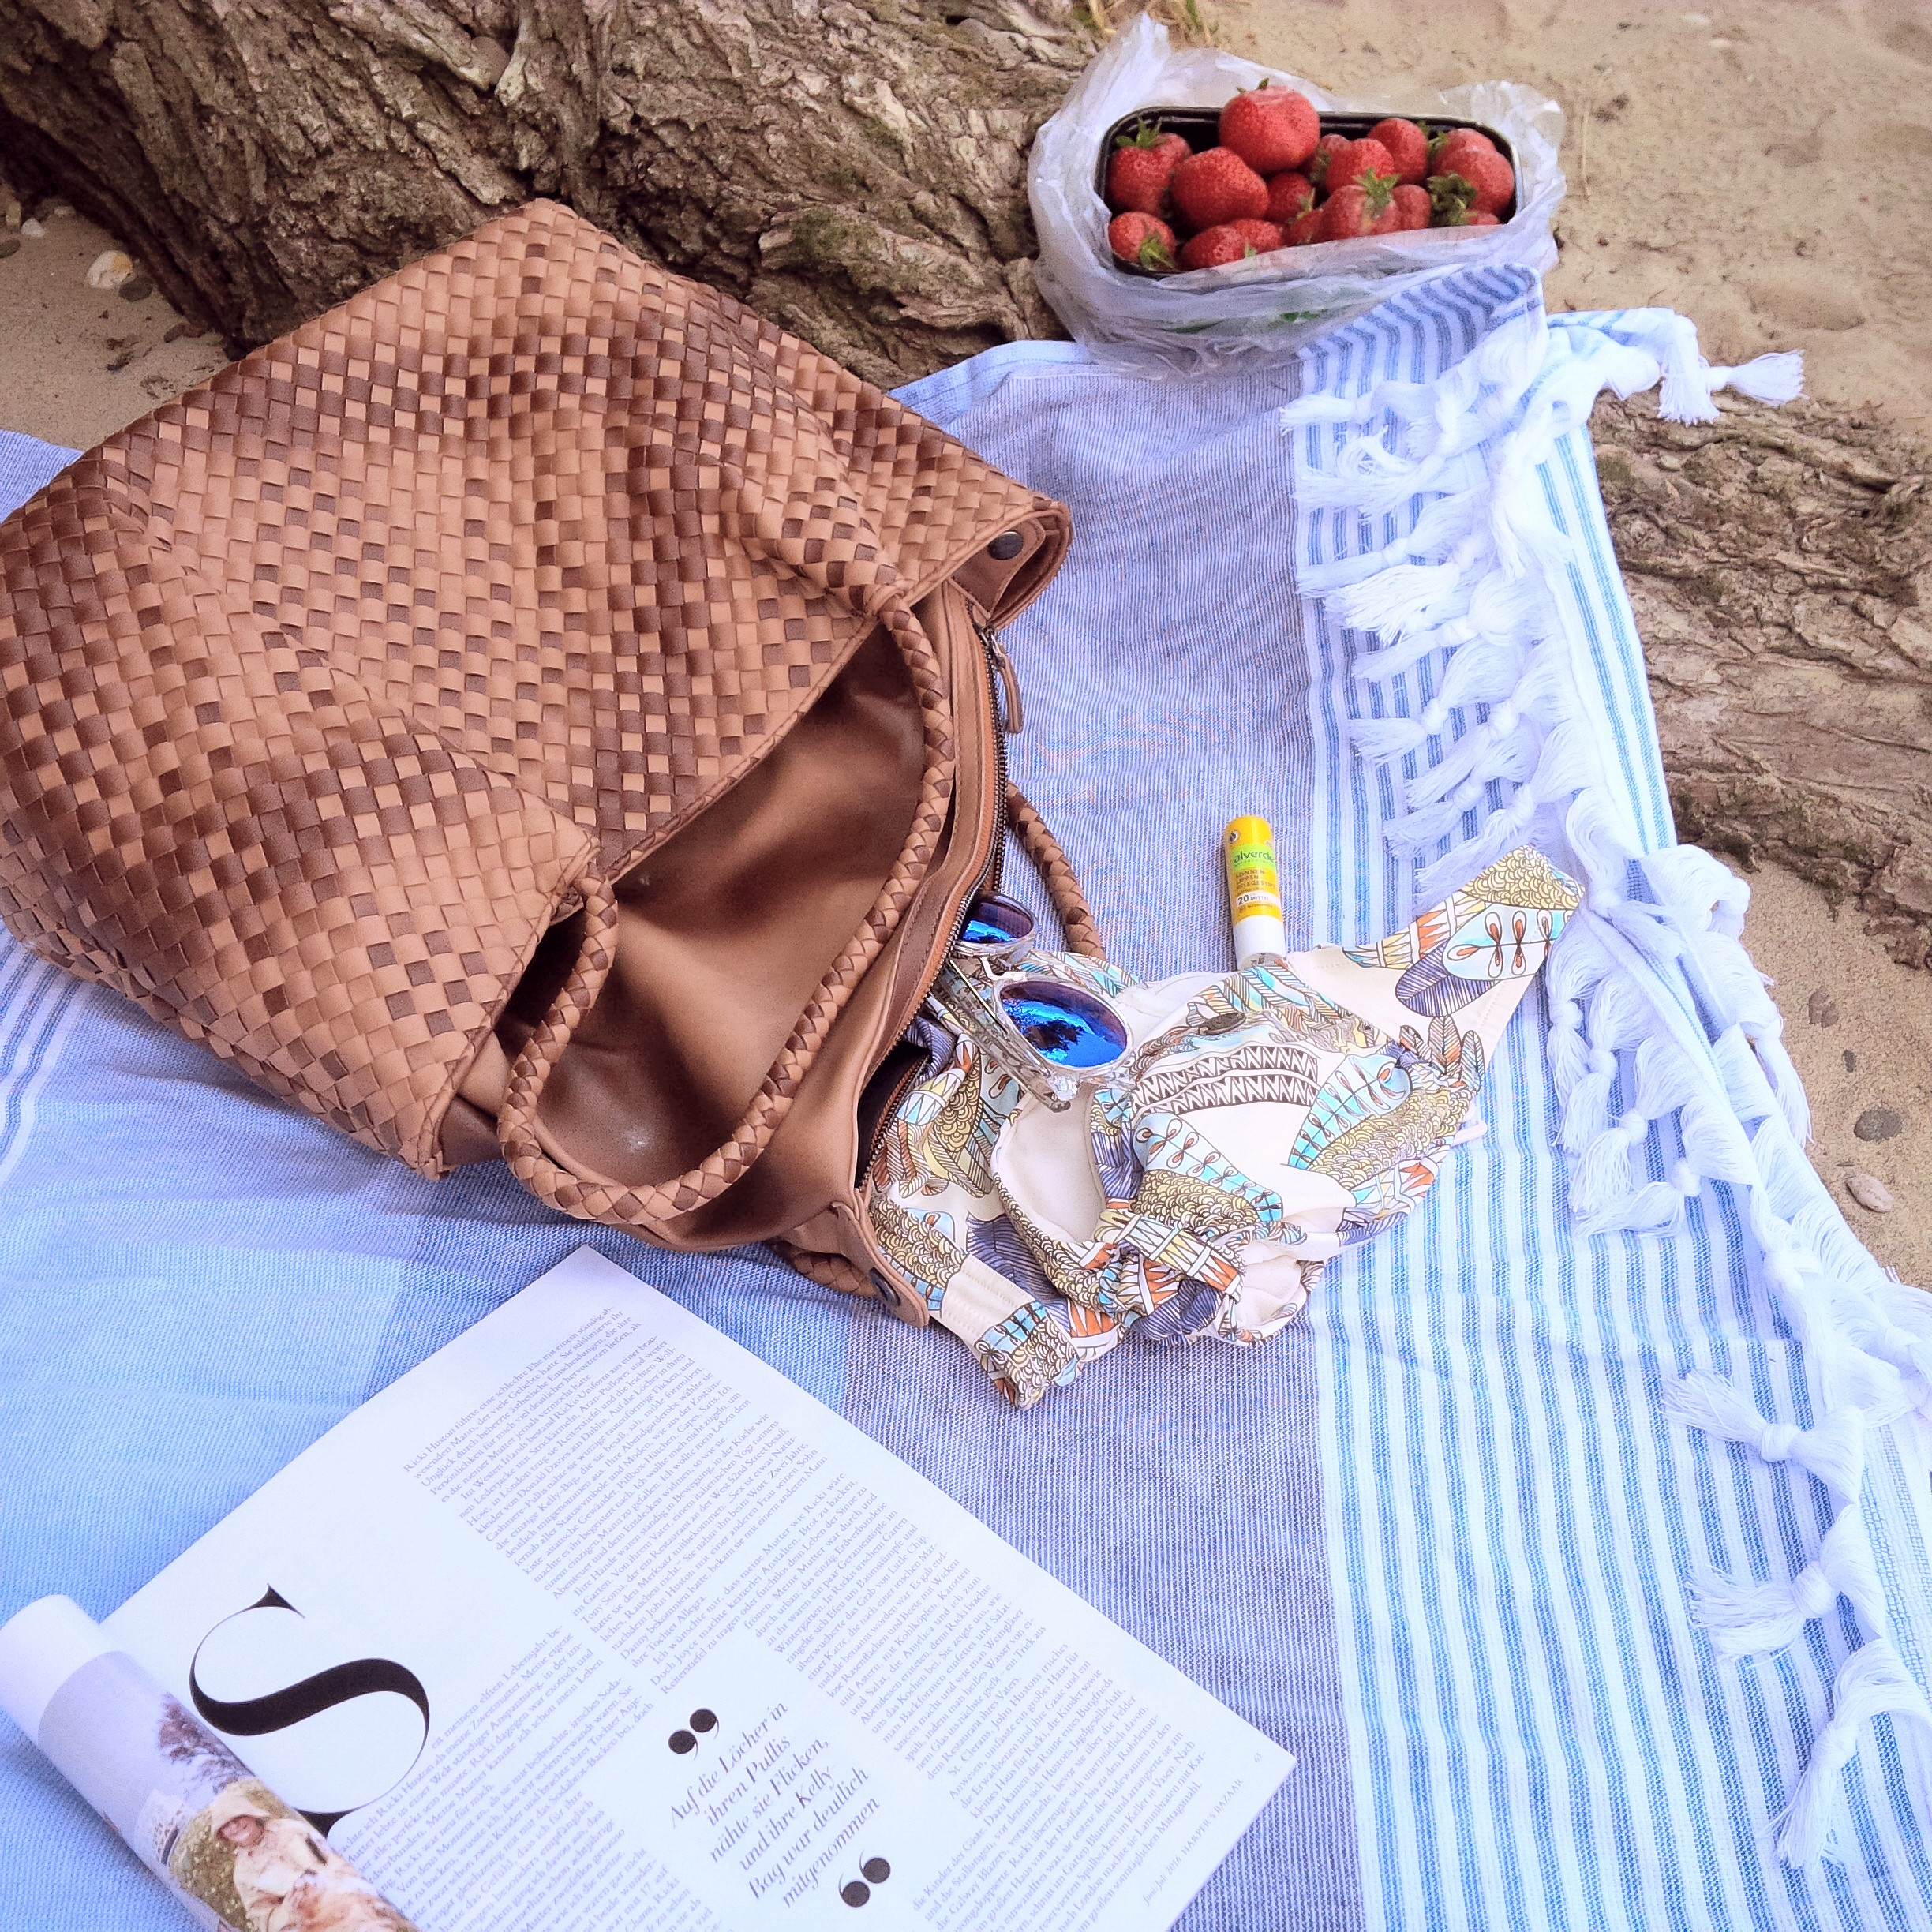 Summer Kick-Off. What's in My Bag & How to Get Ready For Summer. Inspiration. Liebe was ist. Summer Essentials. Tipps, Advice. Sponsored Post - Witt Weiden (1)